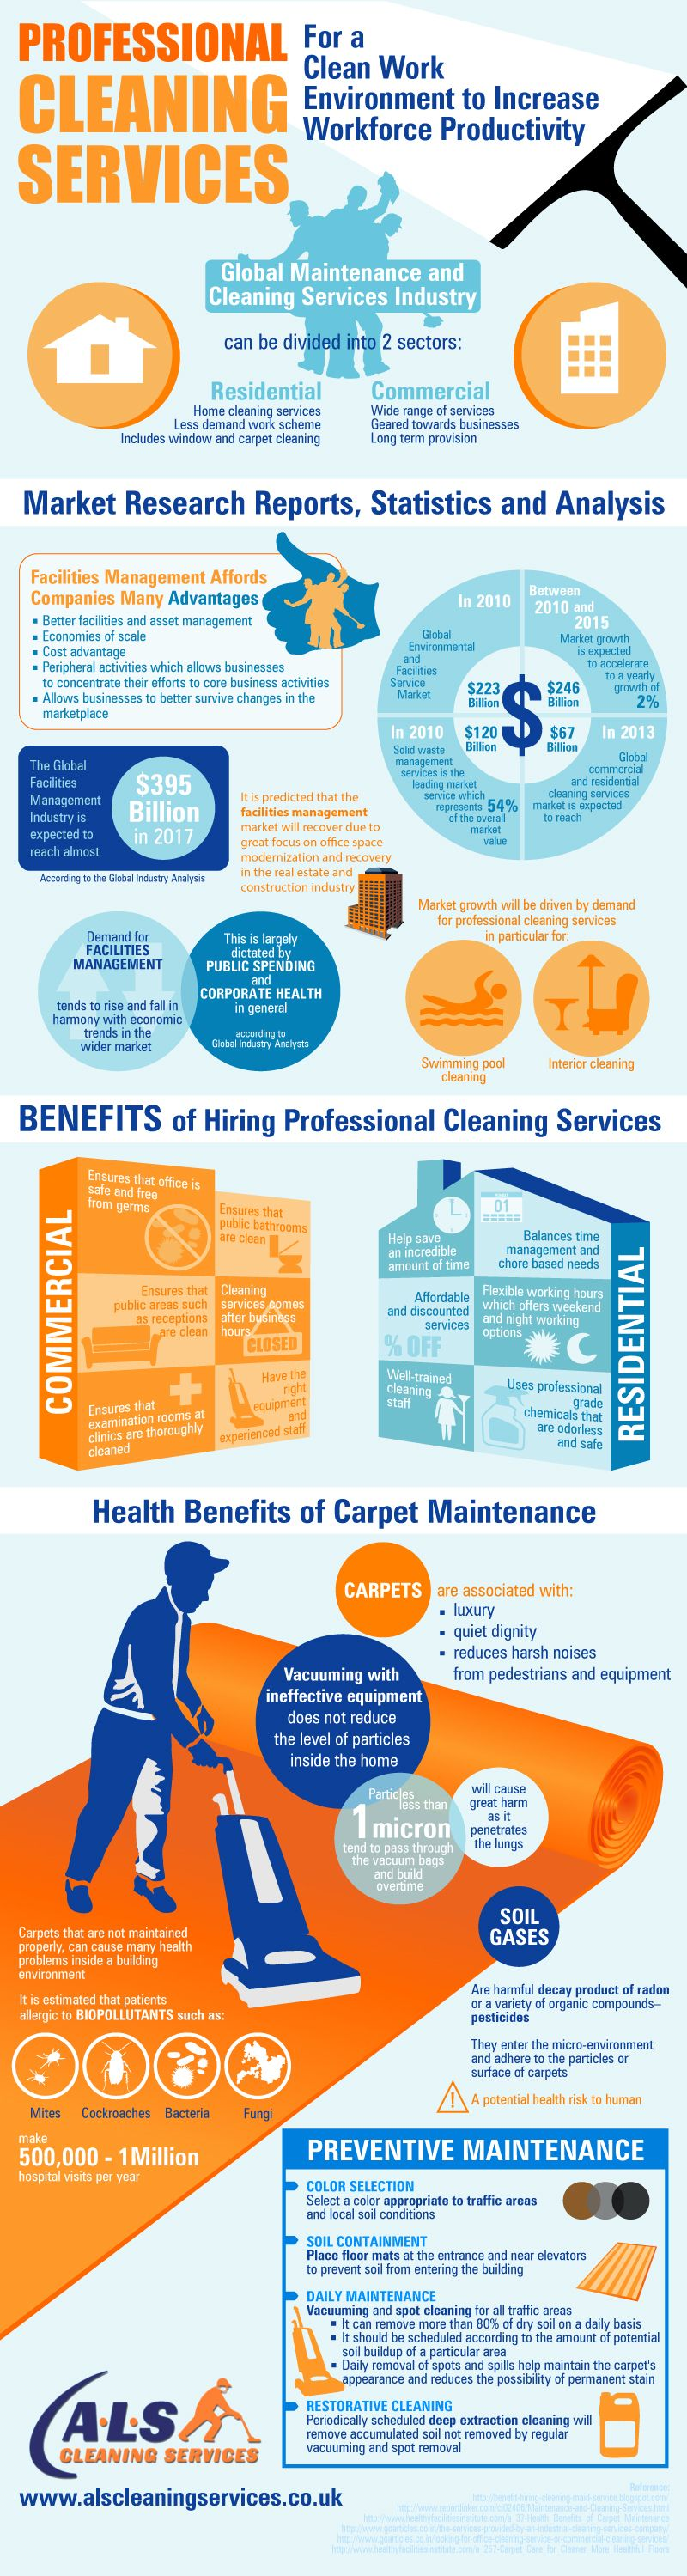 17 Best ideas about Cleaning Company Names on Pinterest | Cleaning ...